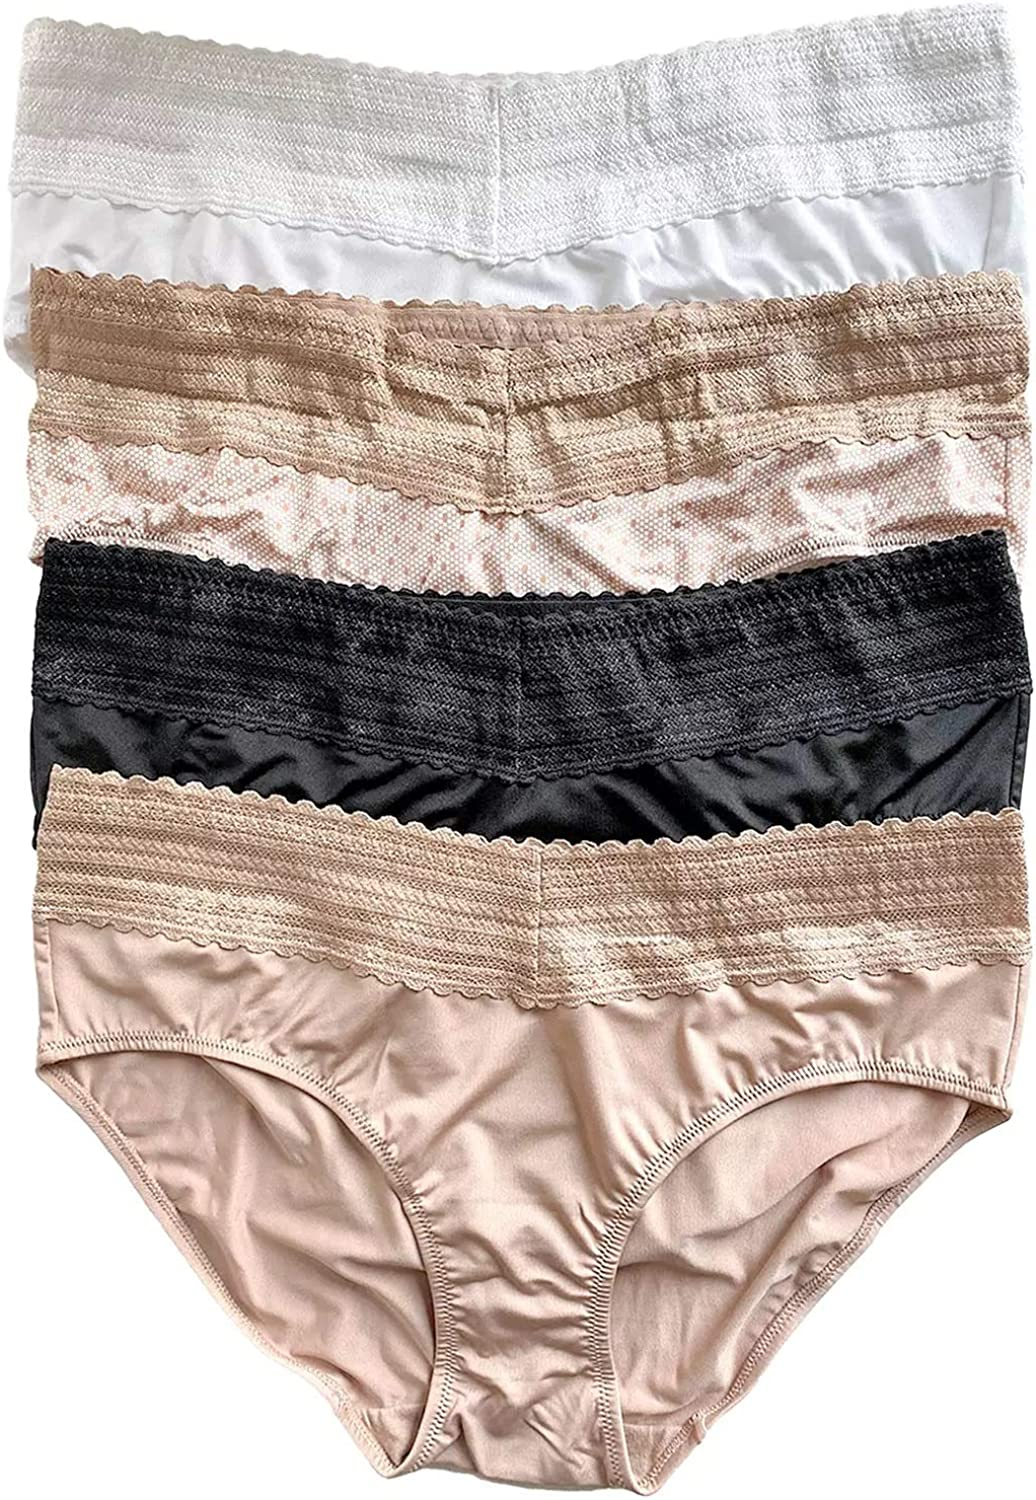 Sales results No. 1 Warner's Women's No Pinches free Problems Hipster 4-Pack Panty